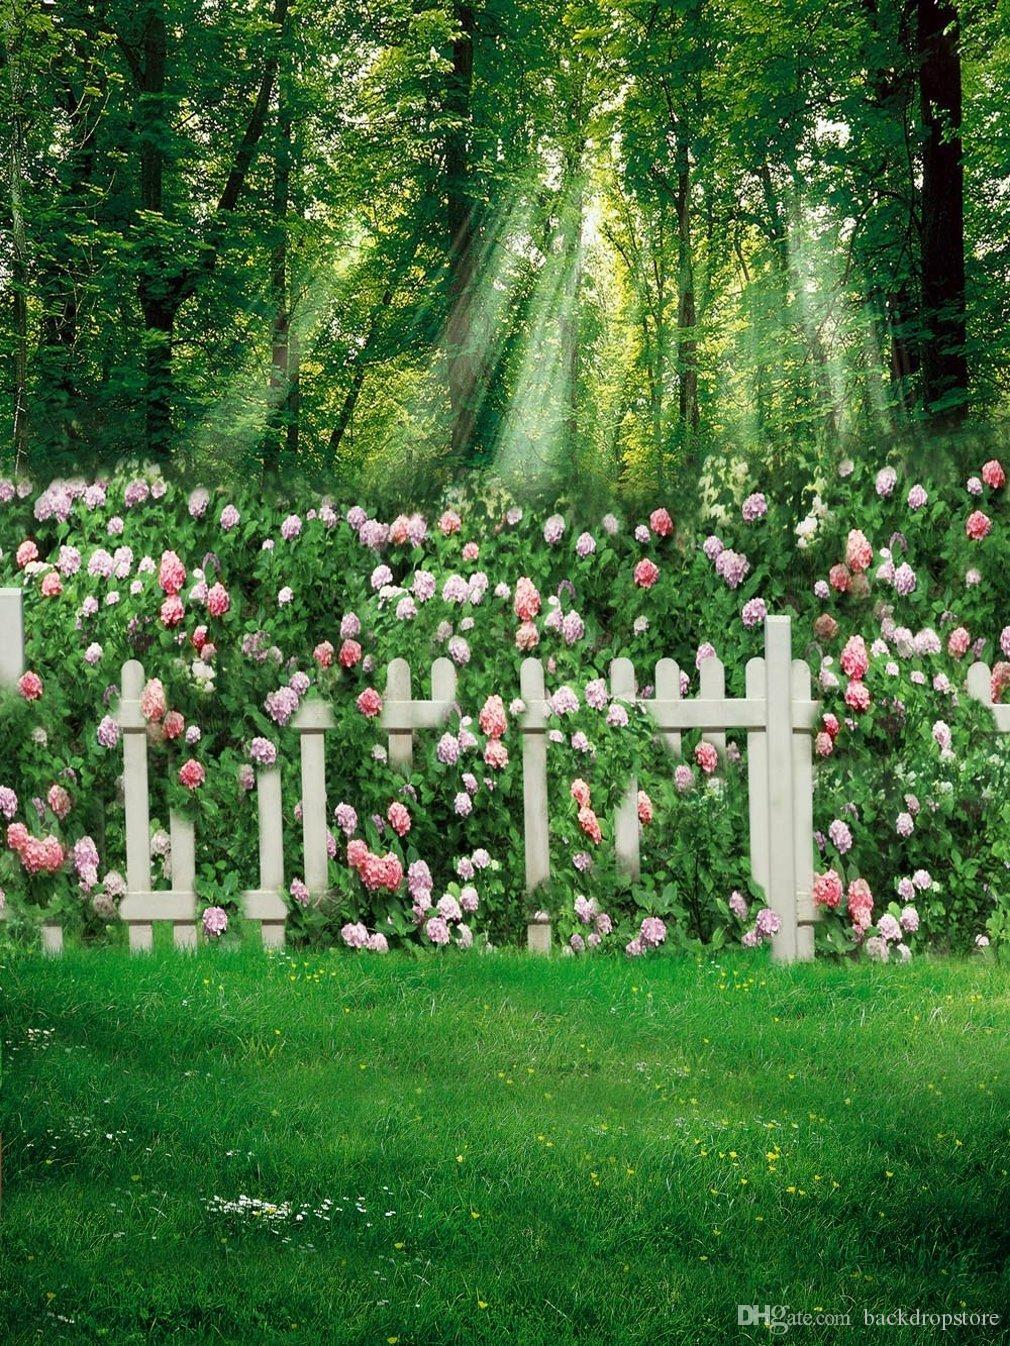 2018 Spring Summer Garden View Backdrop Green Grass Floor Forest Trees  White Fence Pink Flowers Outdoor Scenic Kids Photography Background From ...